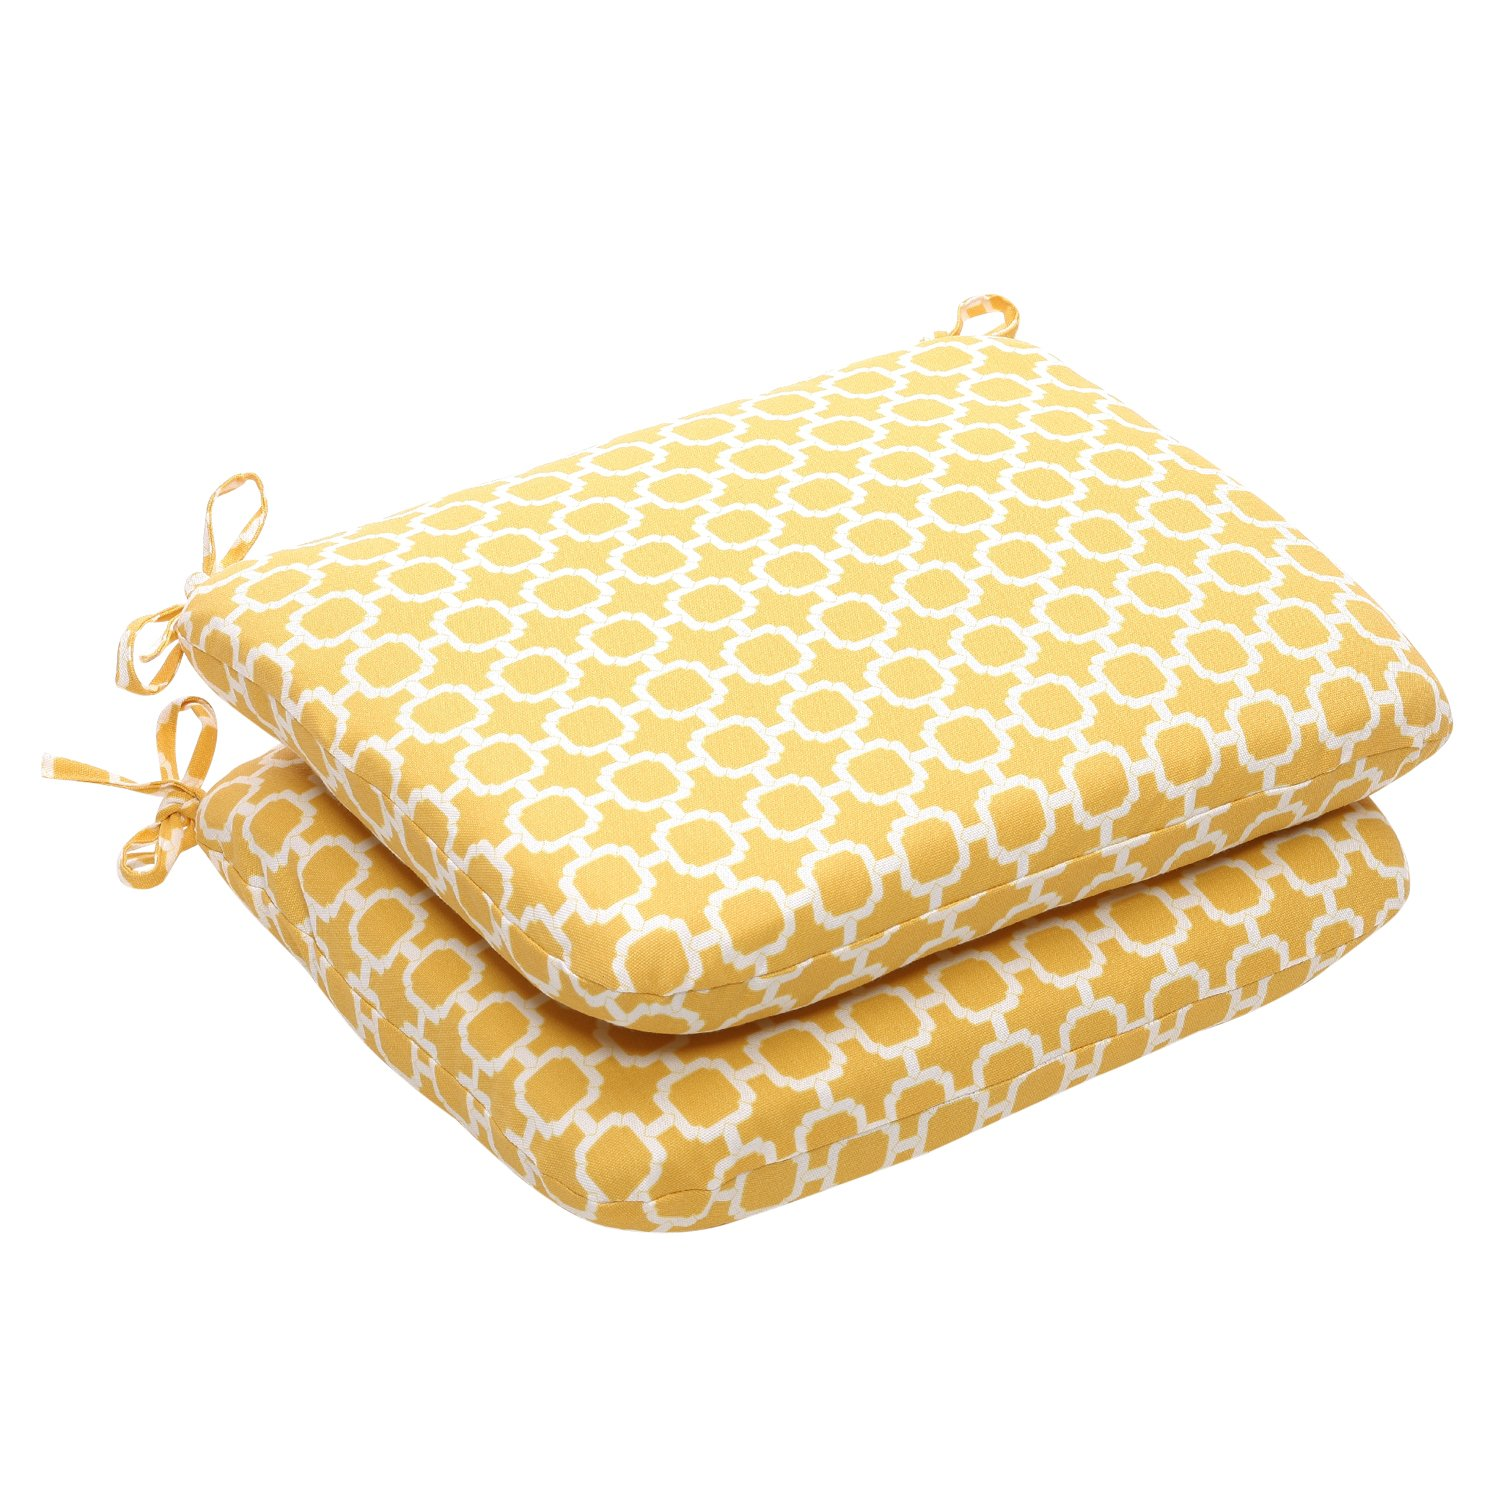 Pillow Perfect Indoor Outdoor Yellow White Geometric Round Seat Cushion, 2-Pack